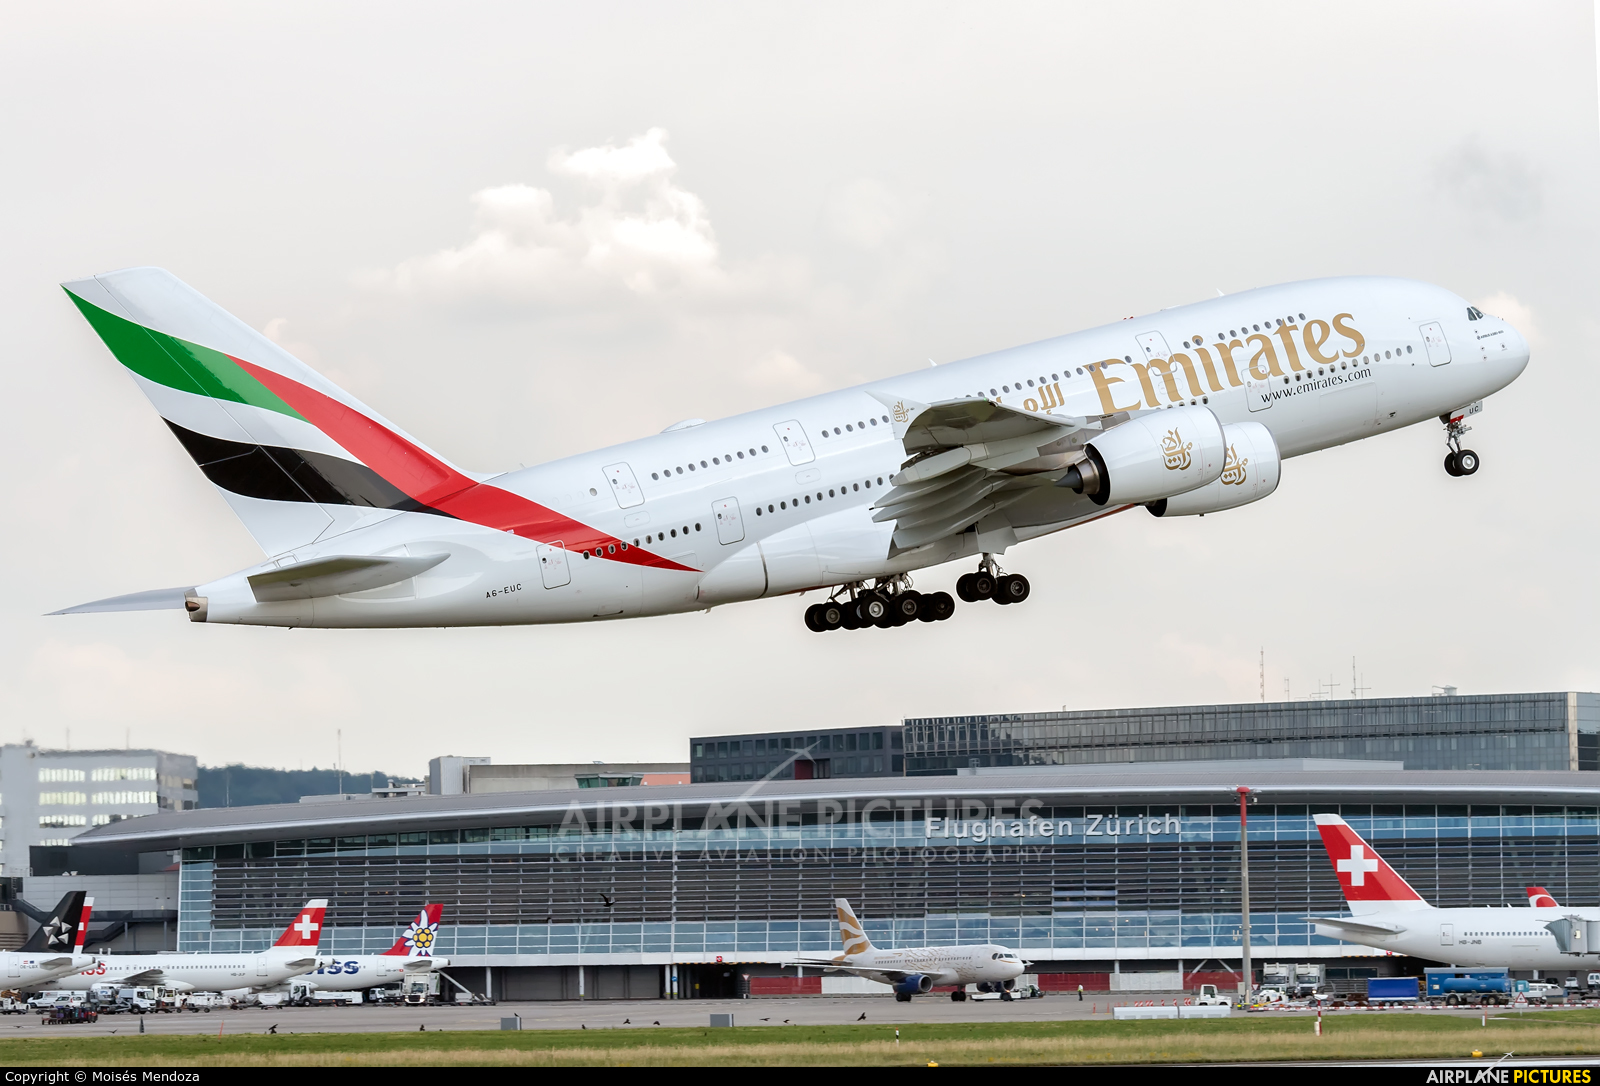 Emirates Airlines A6-EUC aircraft at Zurich